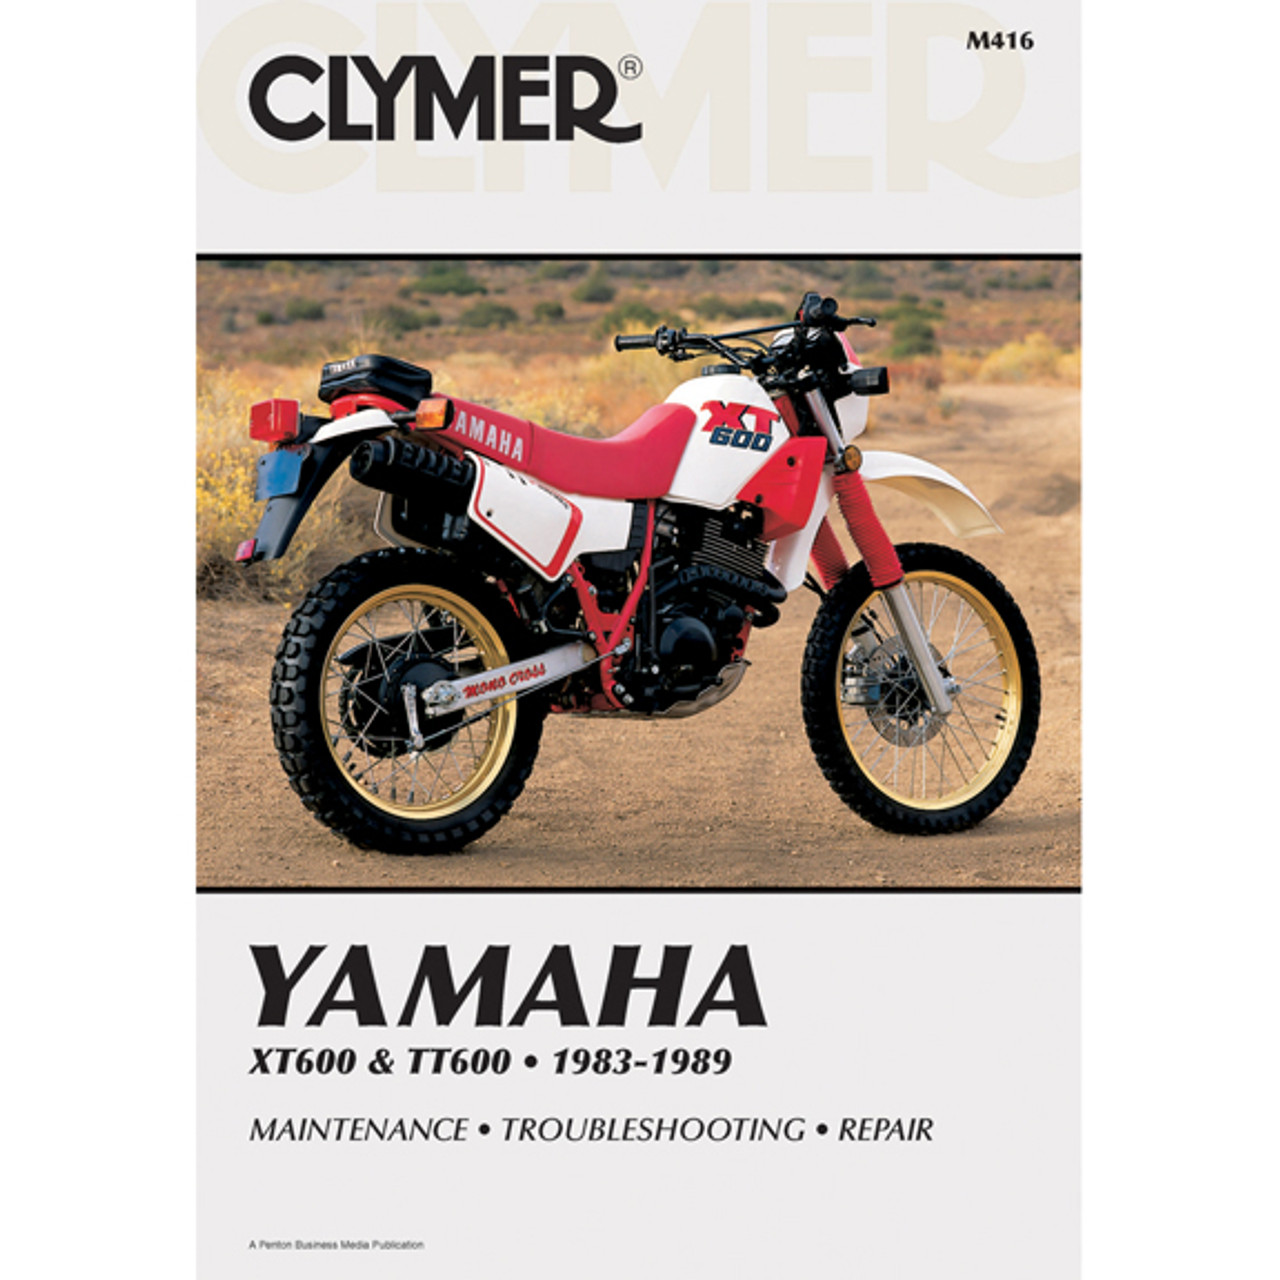 Clymer M416 Service Shop Repair Manual Yamaha XT600 / TT60 83-89